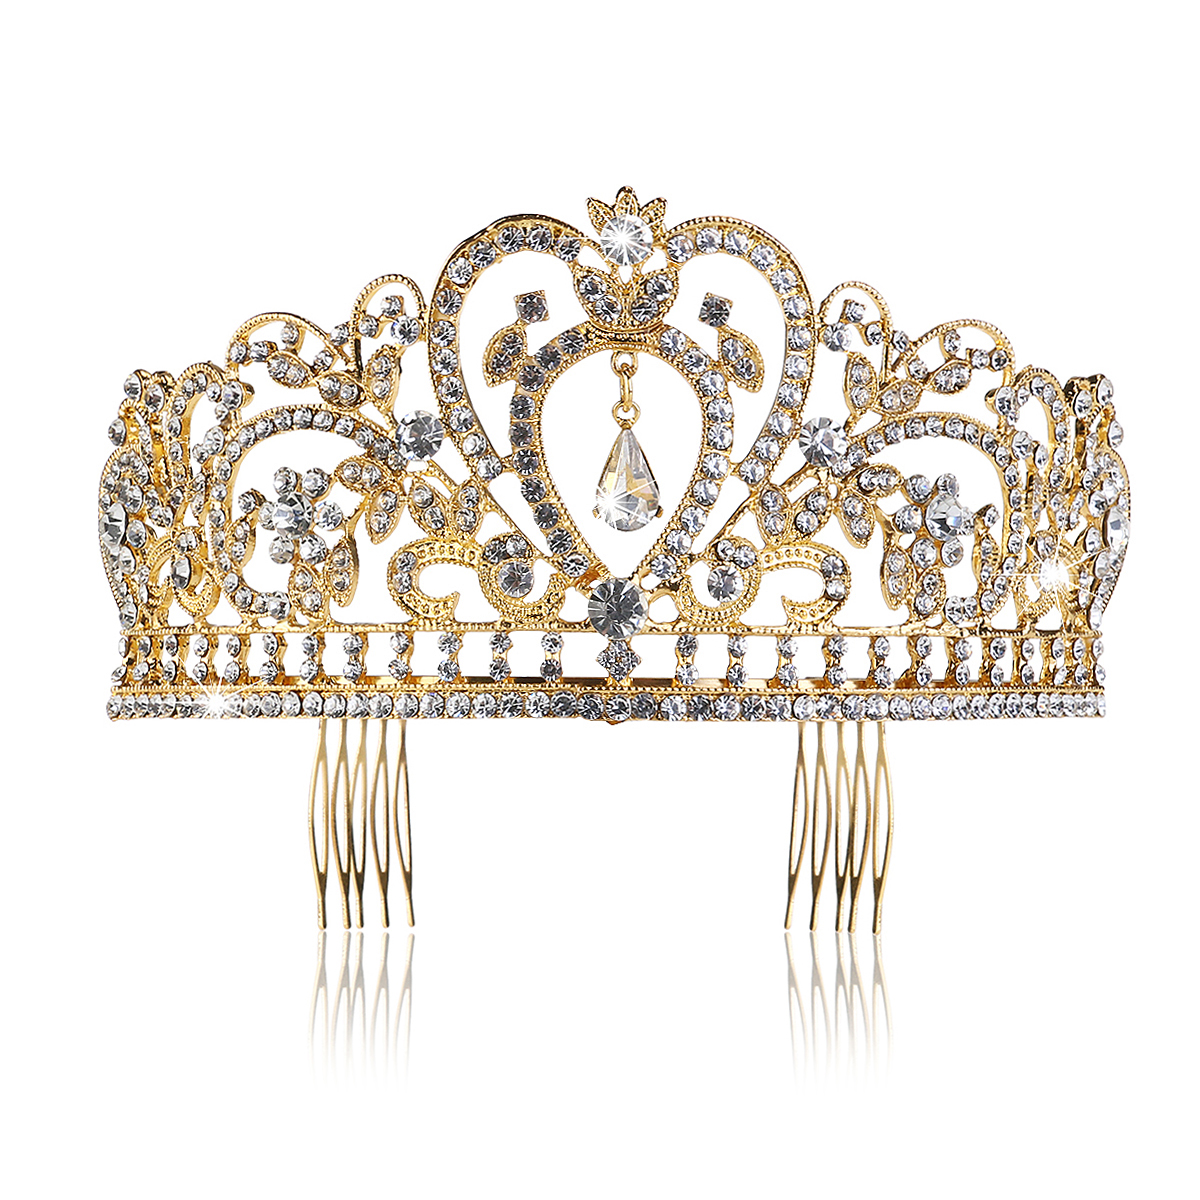 PIXNOR Wedding Tiara with Comb Rhinestones Crystal Bridal Headband Pageant Princess Crown (Gold)